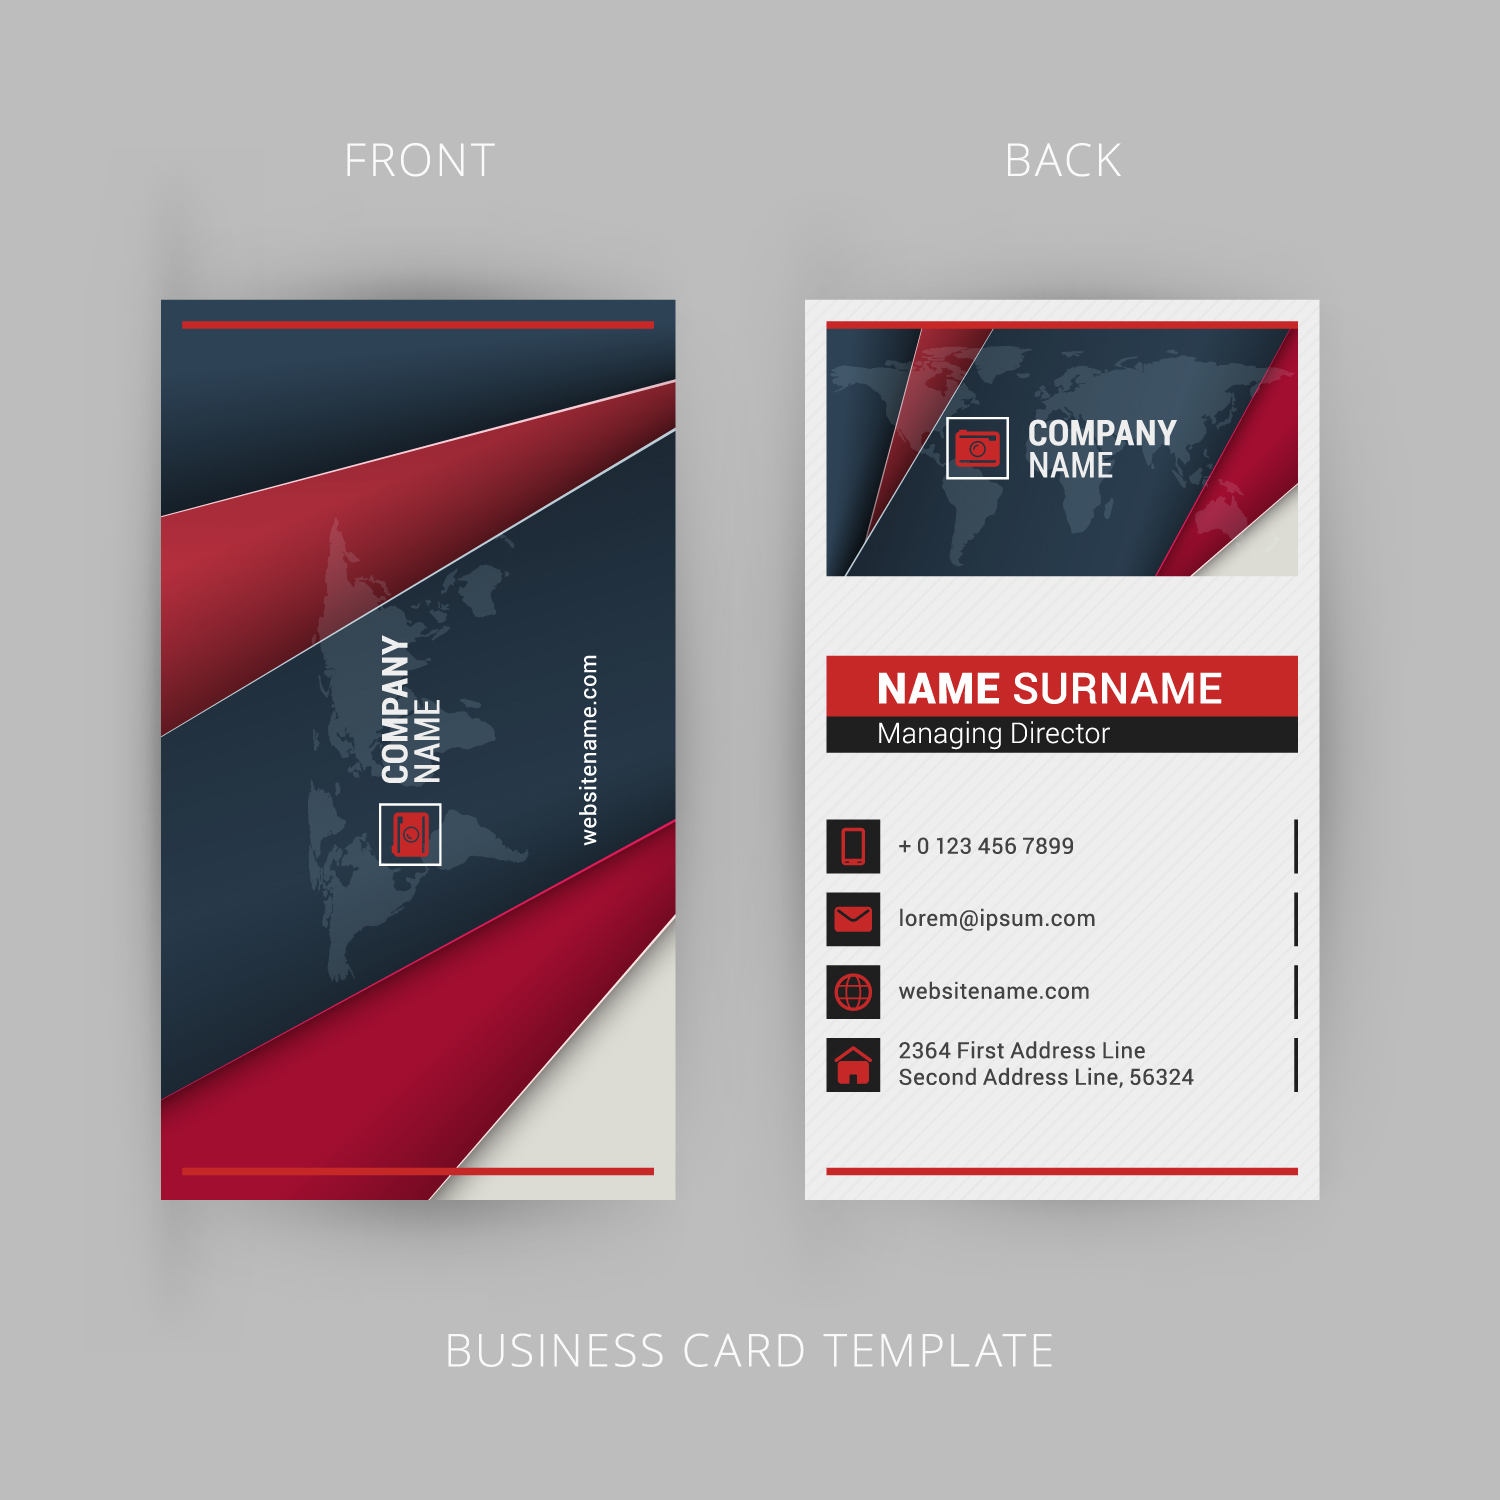 Design three different types of business cards in one deal for $5 ...